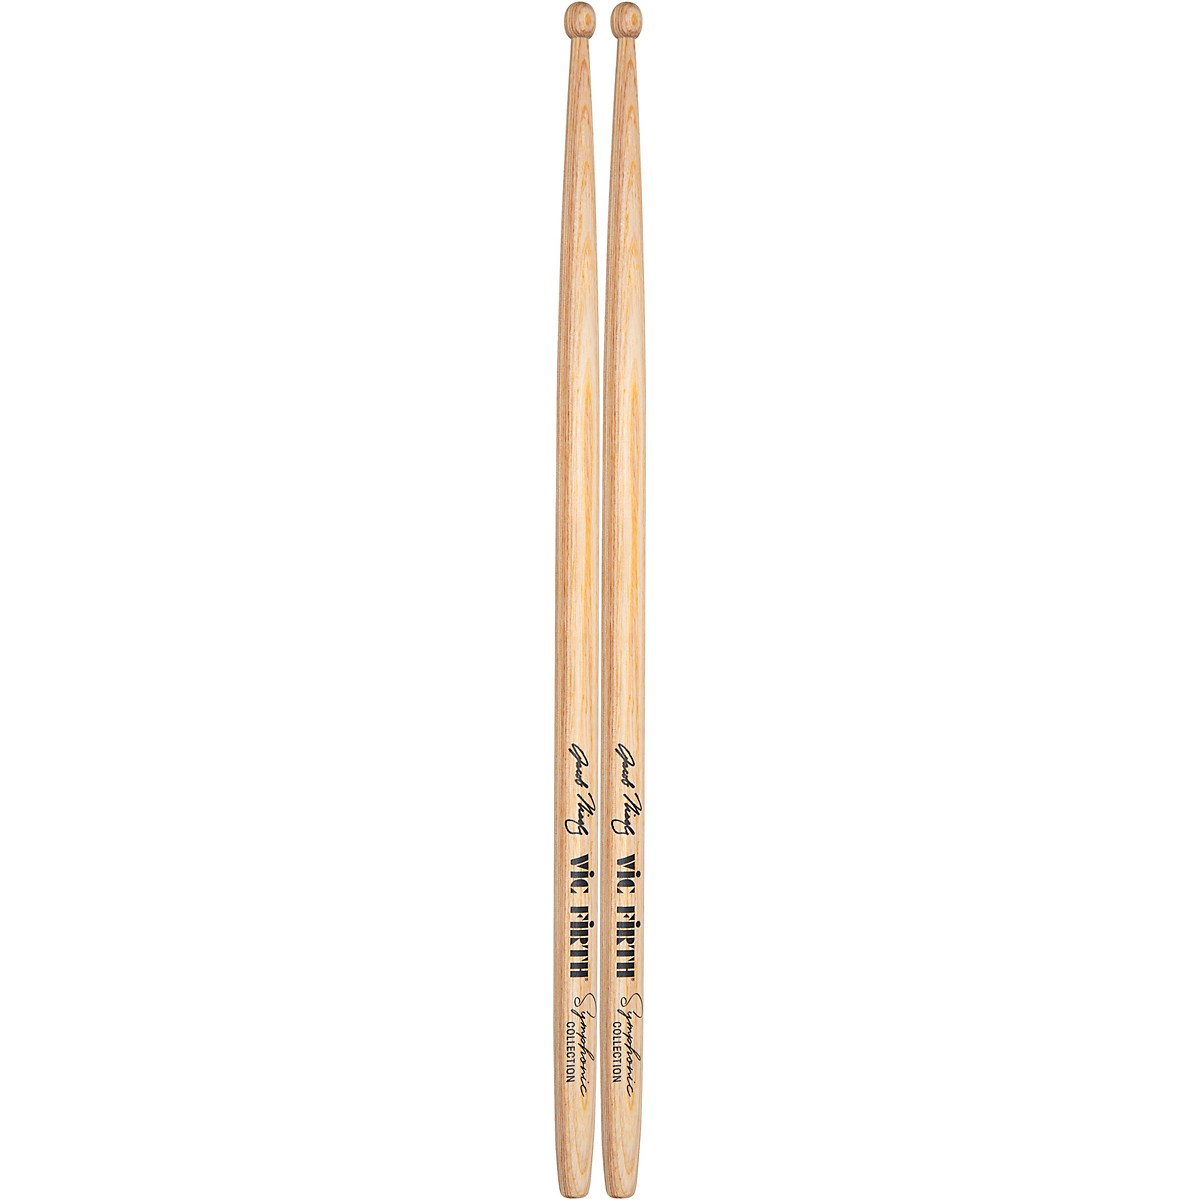 Vic Firth Symphonic Collection Laminated Birch Jake Nissly Signature Drumstick